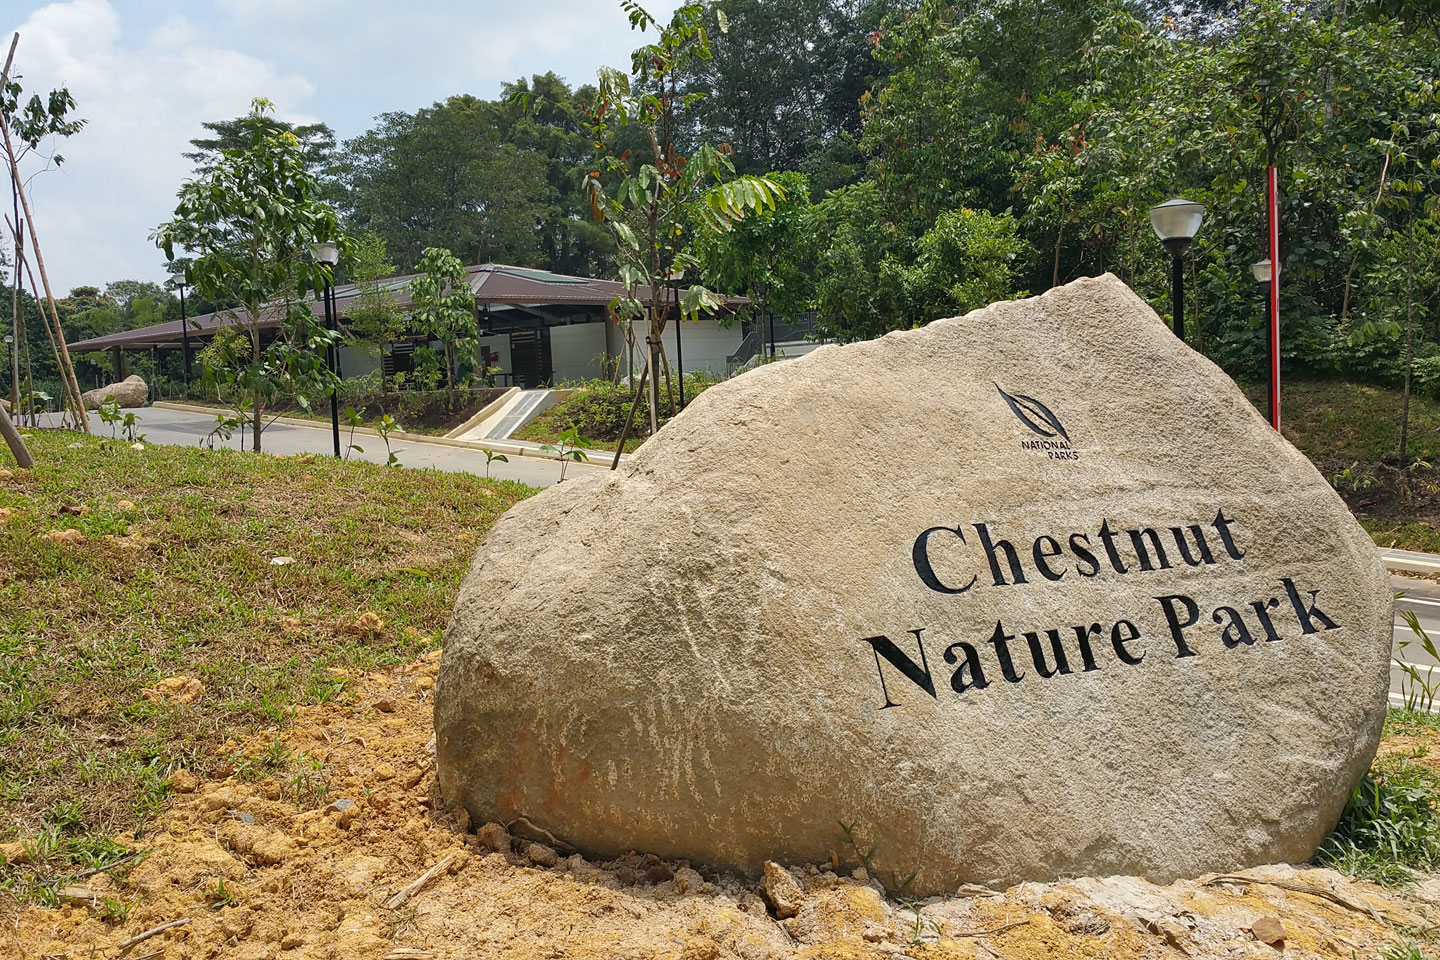 Chestnut Nature Park - Parks & Nature Reserves - Gardens, Parks & Nature -  National Parks Board (NParks)